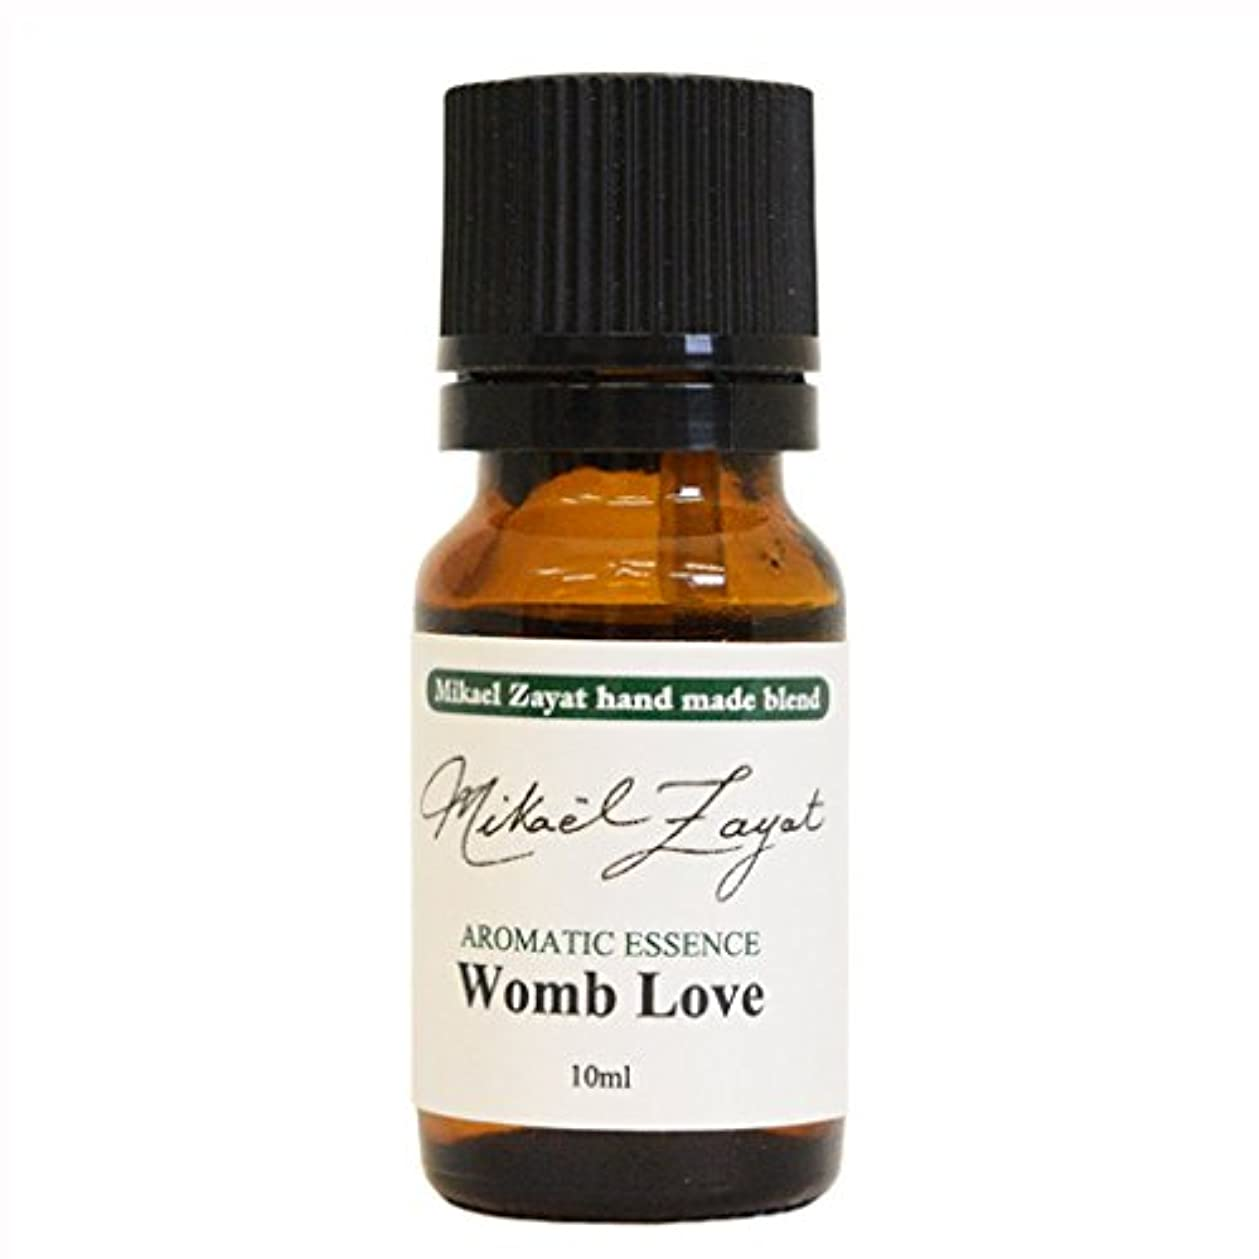 住人同志形ミカエルザヤット Womb Love 10ml / Mikael Zayat hand made blend